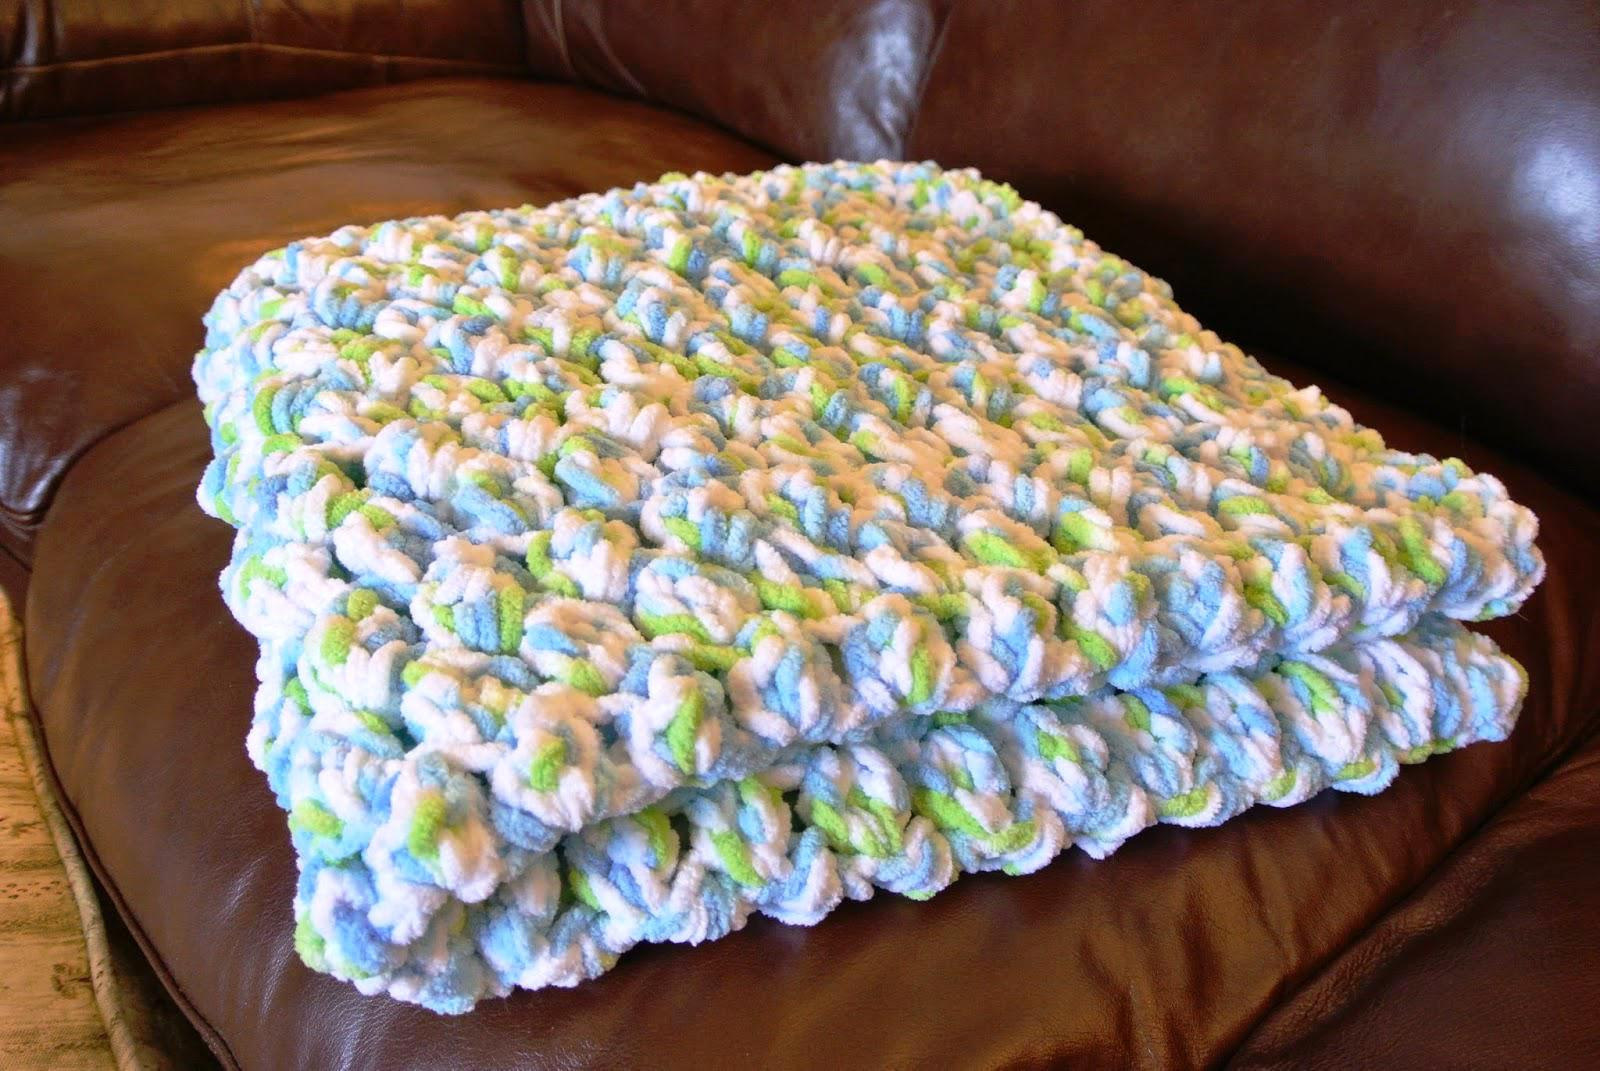 Bernat Crochet Blanket Fresh Bernat Puffy Baby Blanket Of Incredible 49 Images Bernat Crochet Blanket